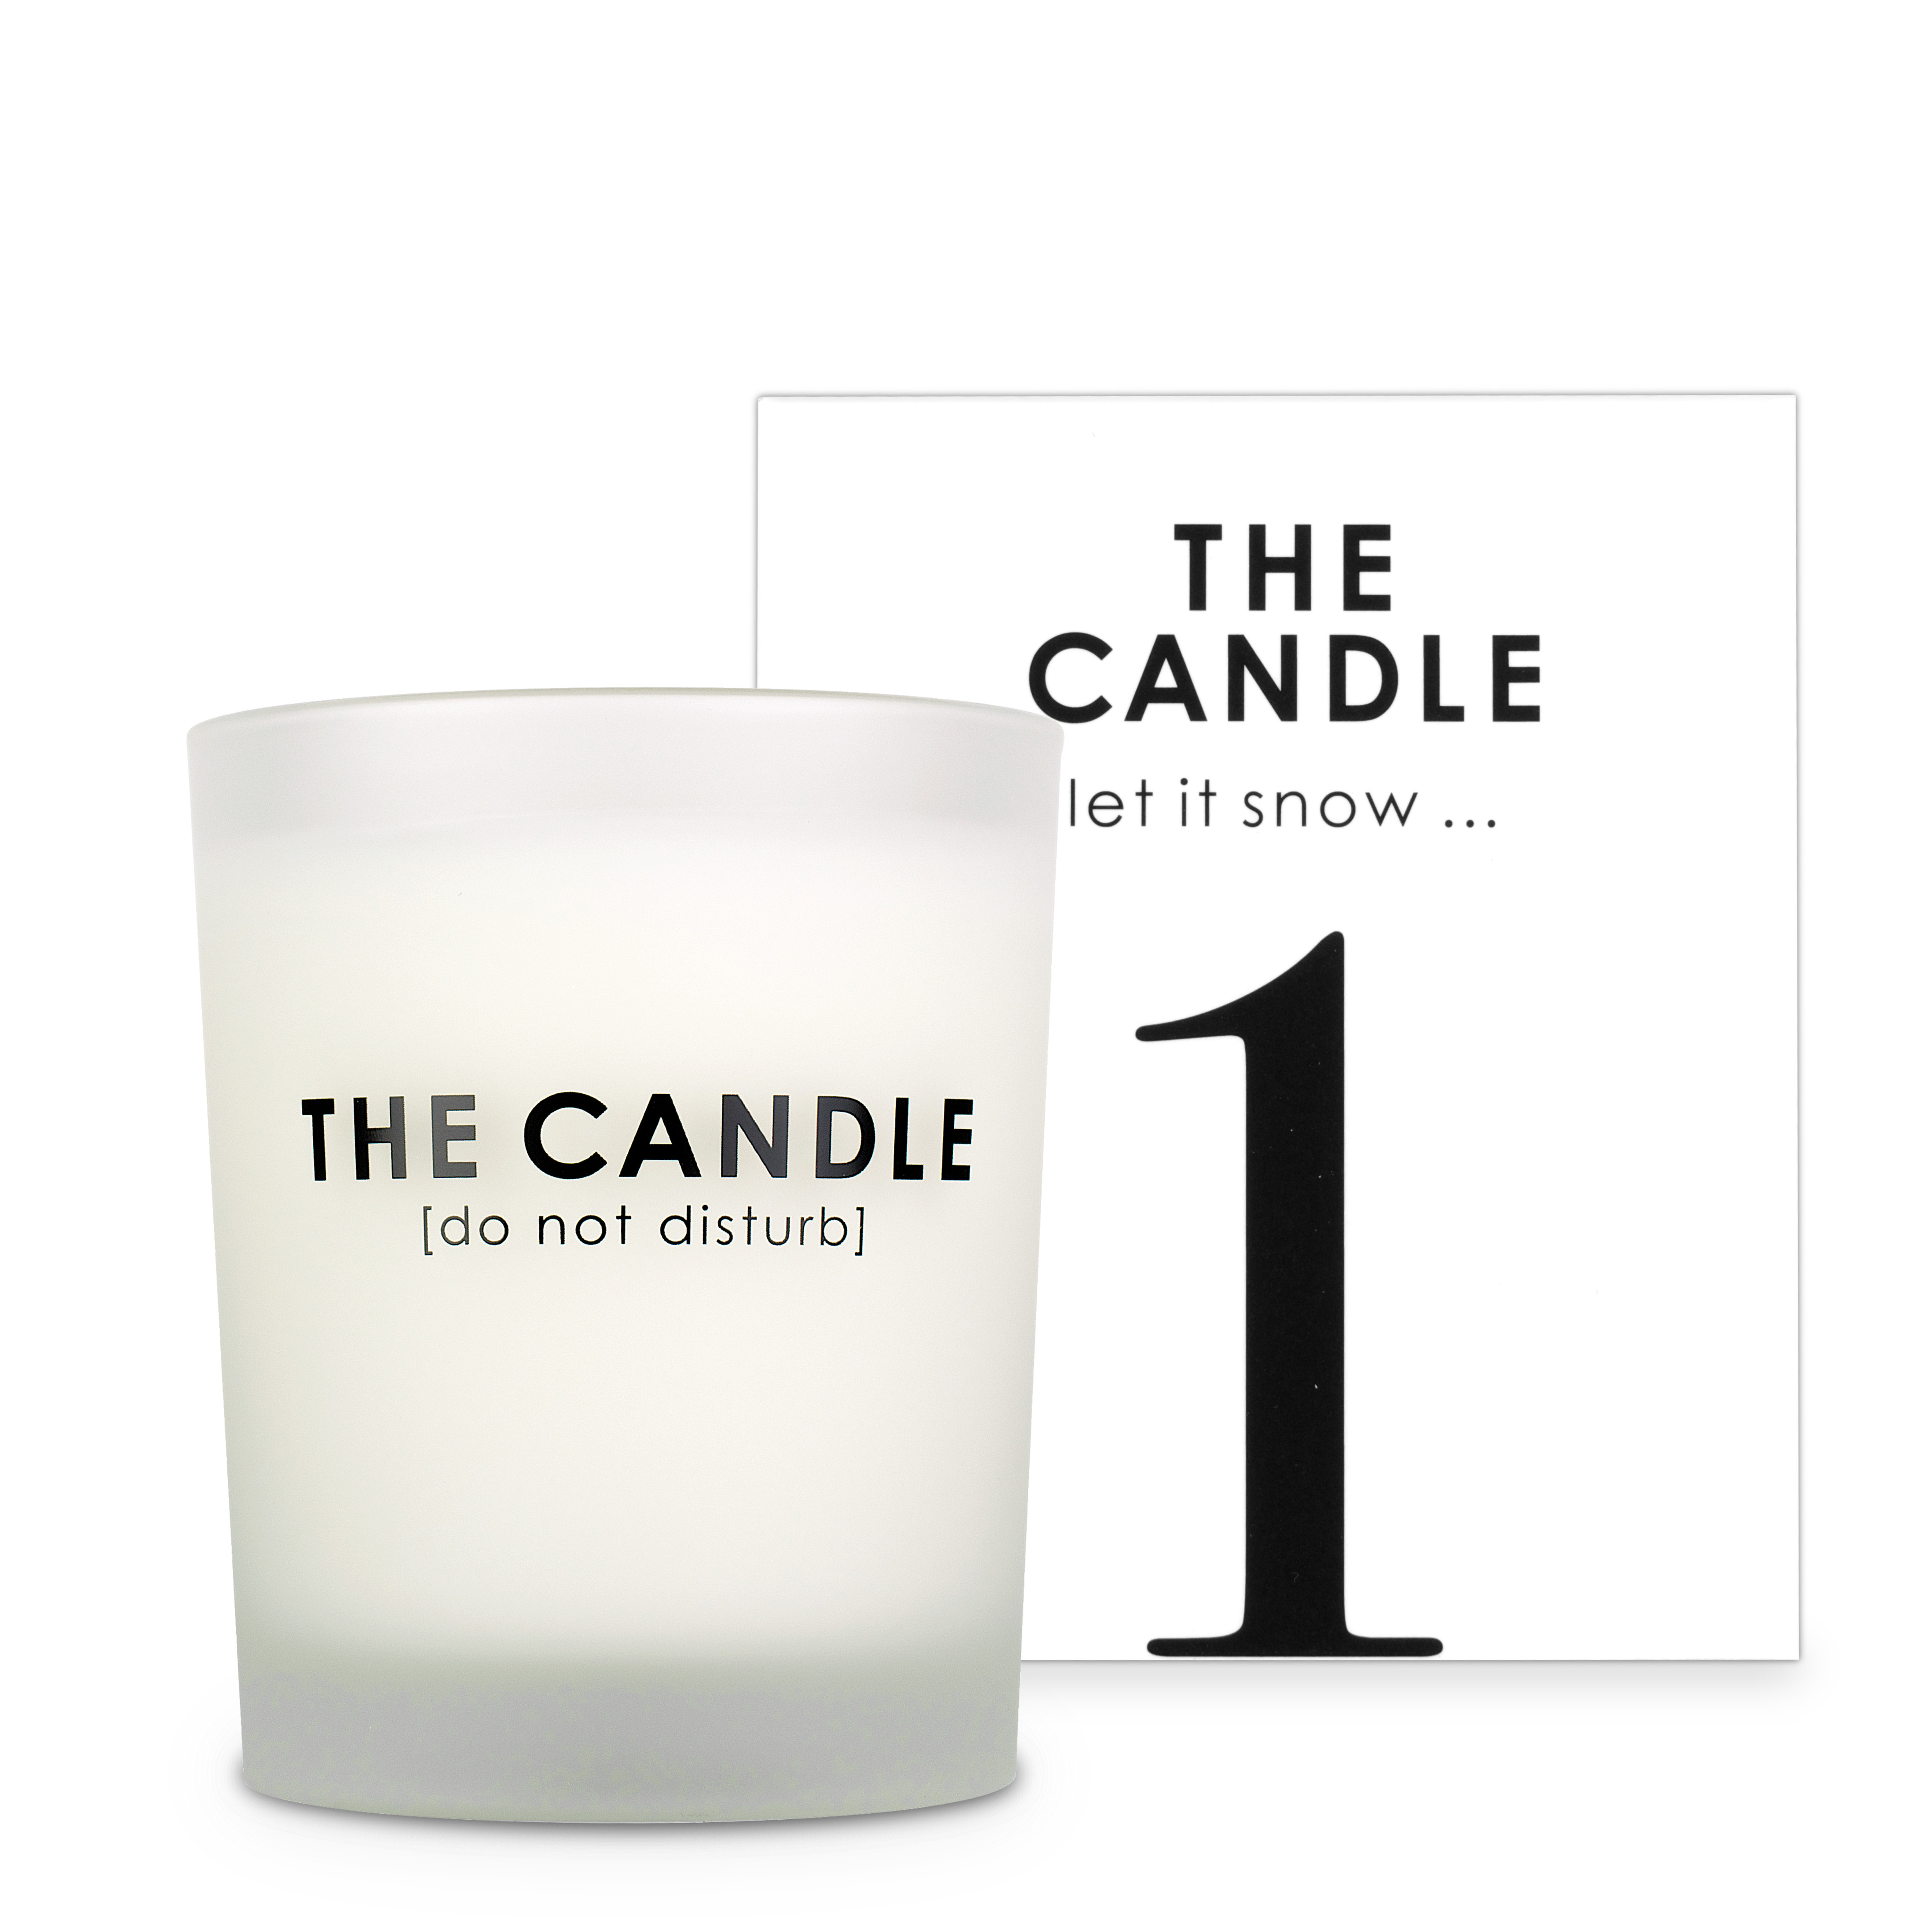 The Candle let it snow